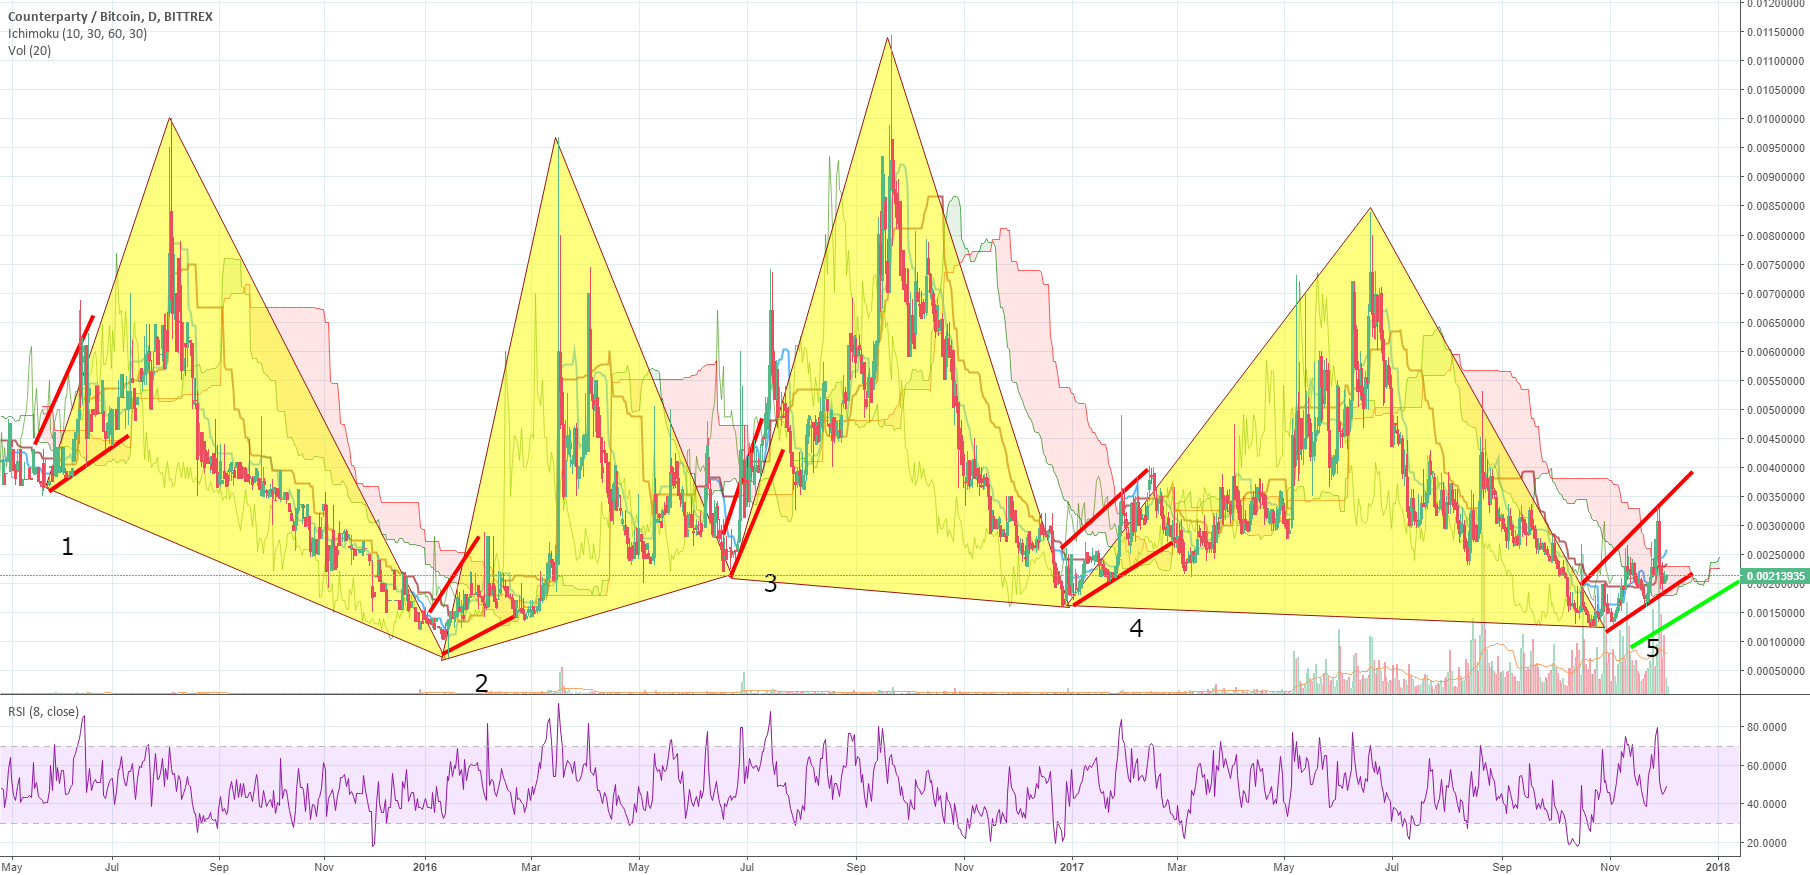 Counterparty possible 5th Bullish Channel